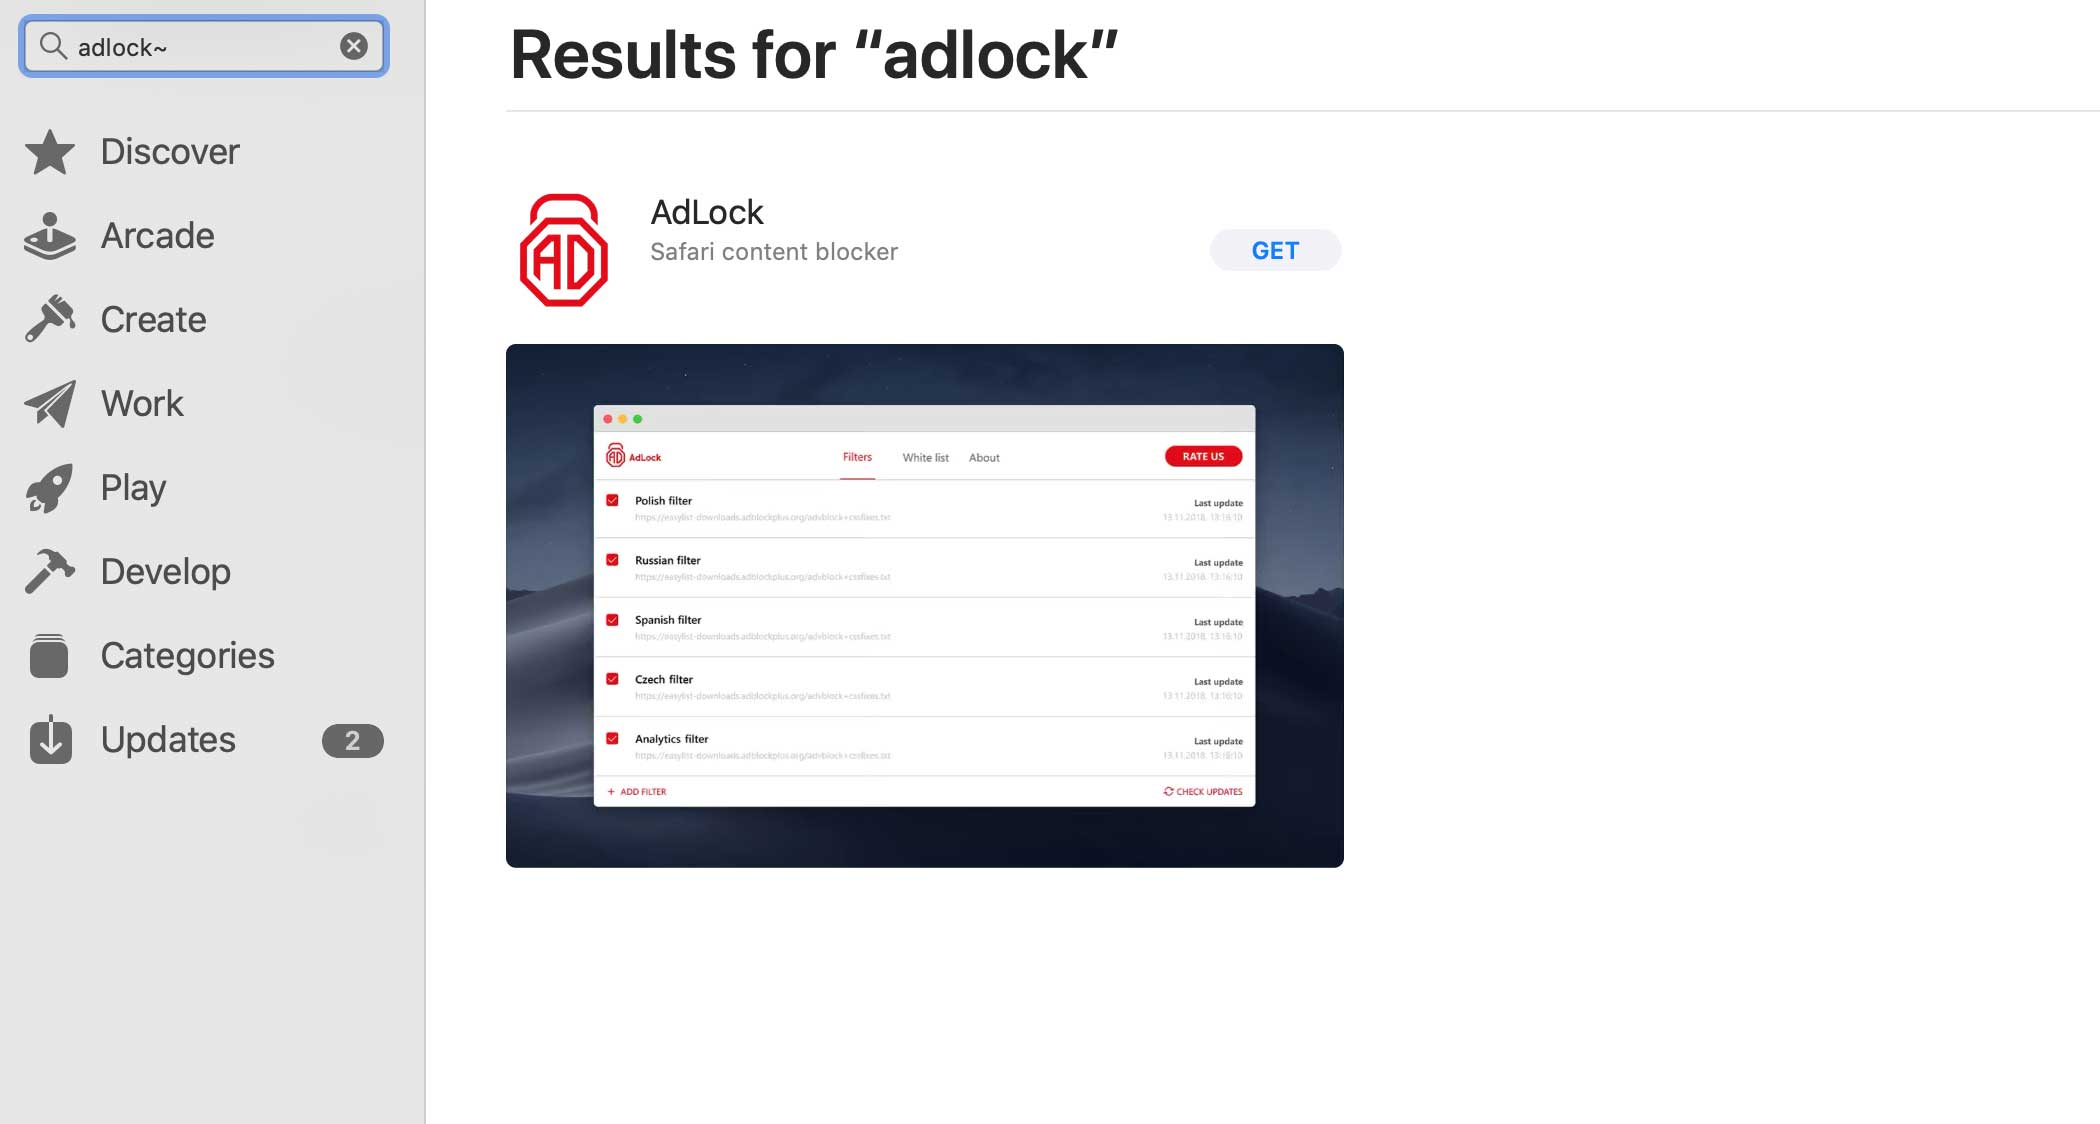 Ad Blockers for iPhone and iPad